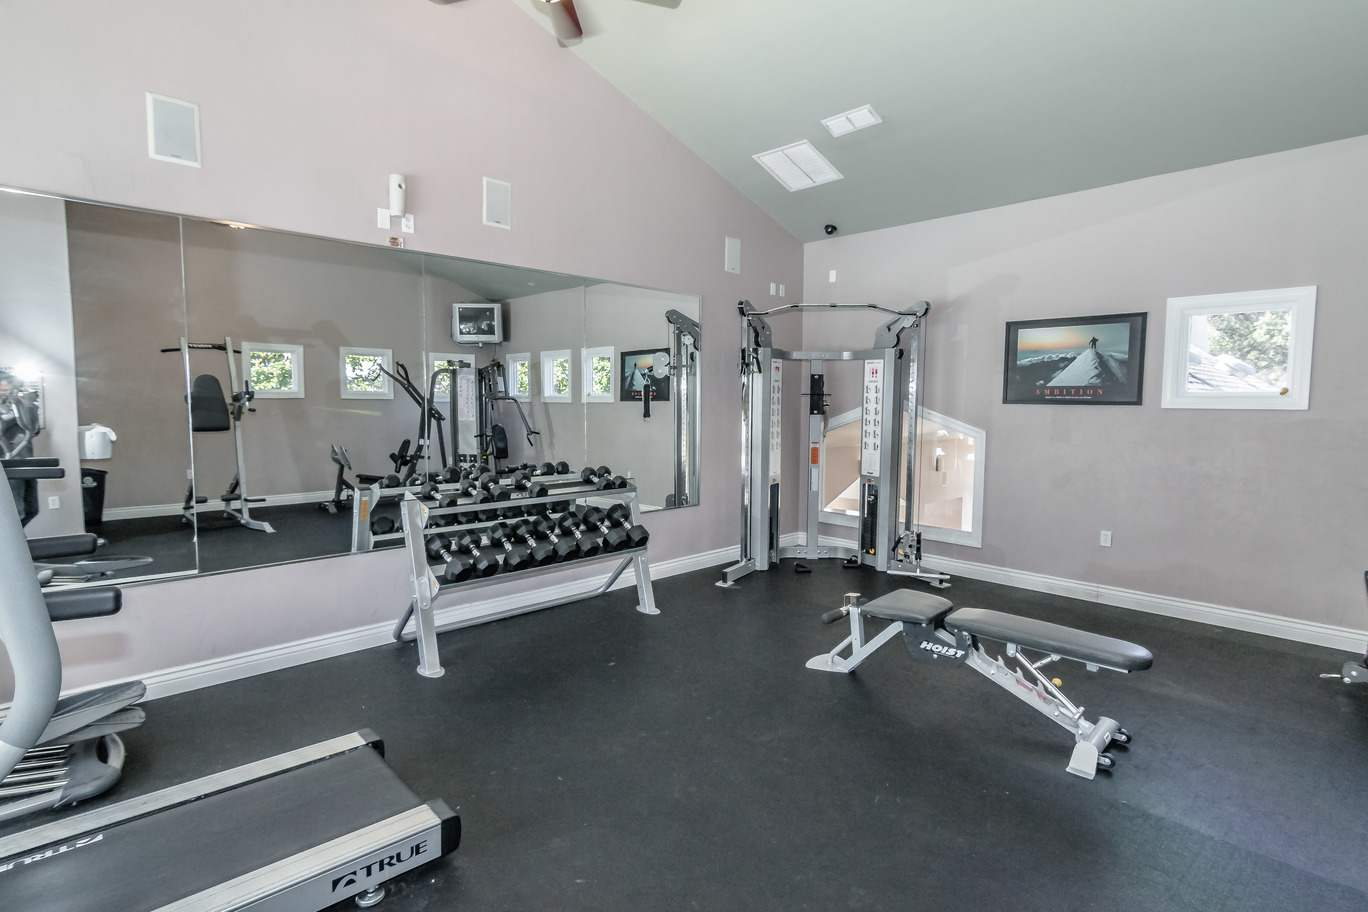 Seminole-Trails-Tallahassee-Fitness-Center2-Unilodgers